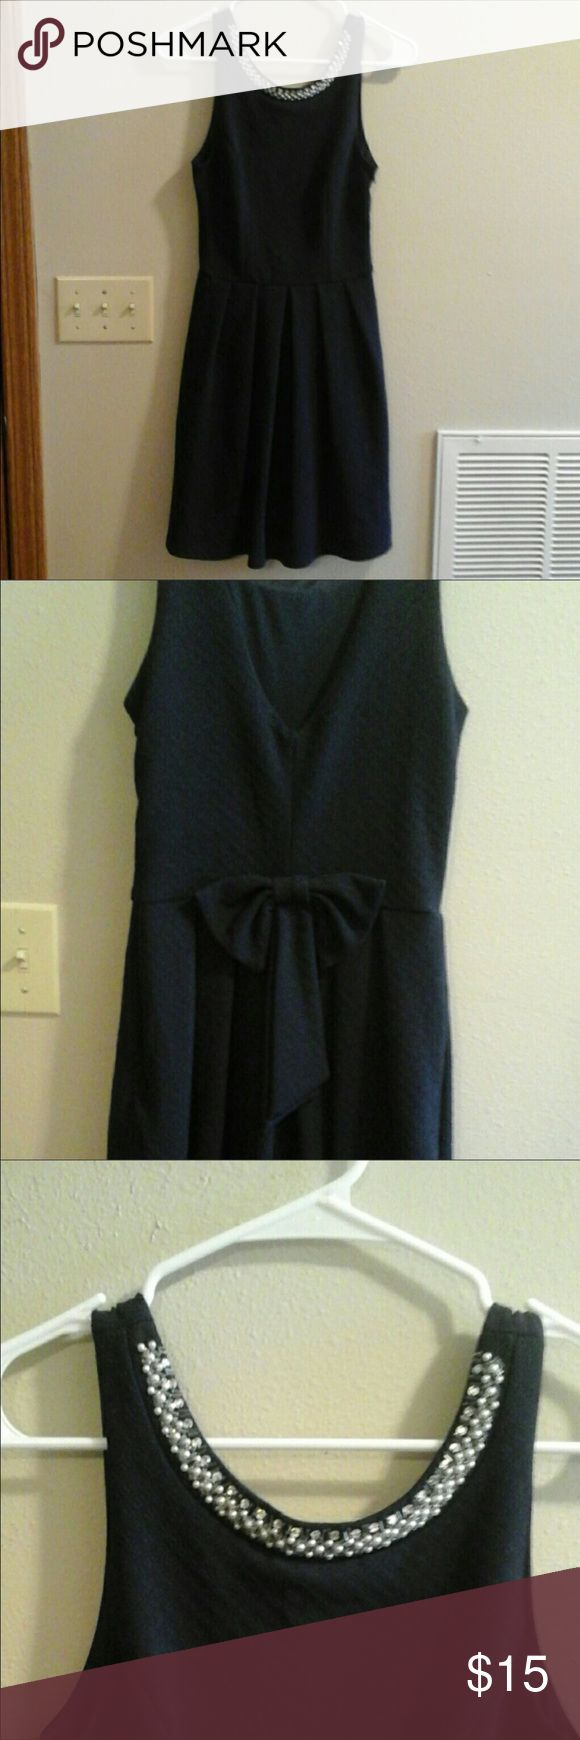 Navy Blue Bow Back Dress Size Small This beautiful navy blue bow-back dress has a gorgeous beaded neckline. It looks beautiful for weddings, church, or date night! You can't go wrong with a classic look like this. Francesca's Collections Dresses Midi